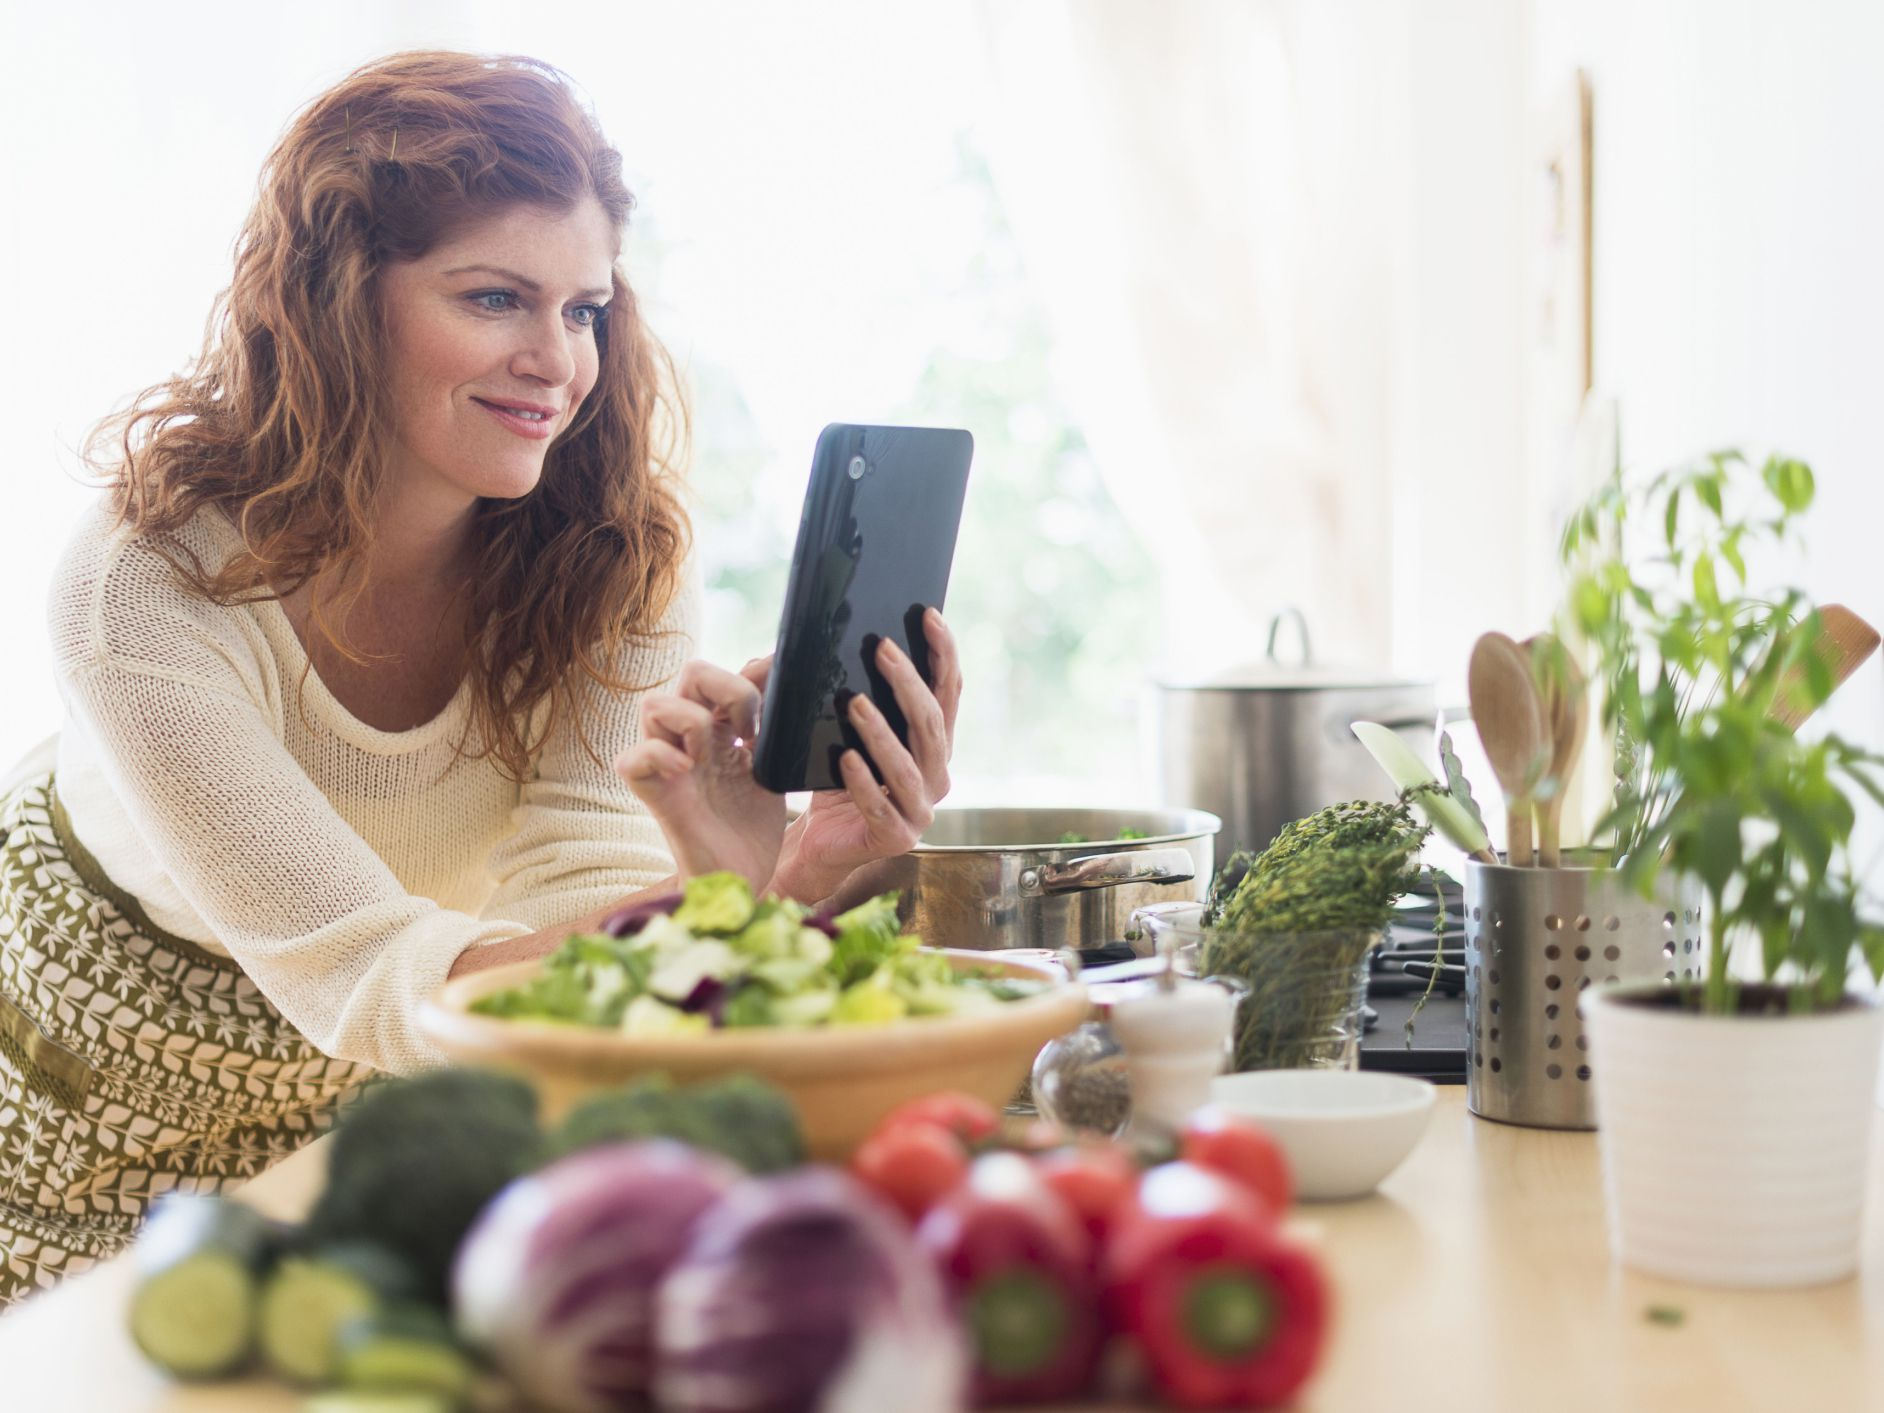 Top 5 Apps for Managing Type 2 Diabetes